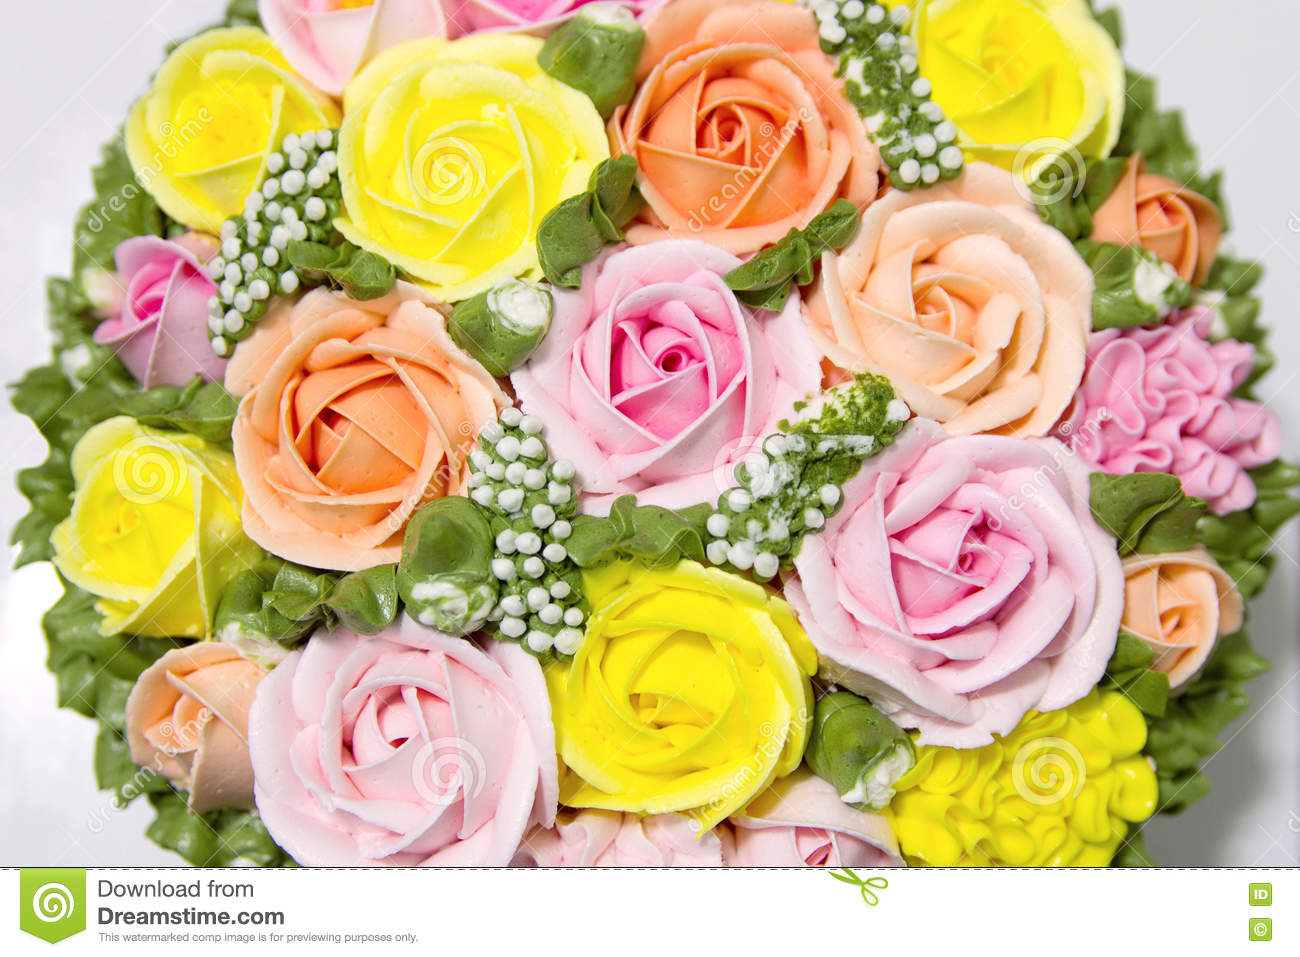 Birthday Cake With Flowers Stock Photo Image Of Color 81619768